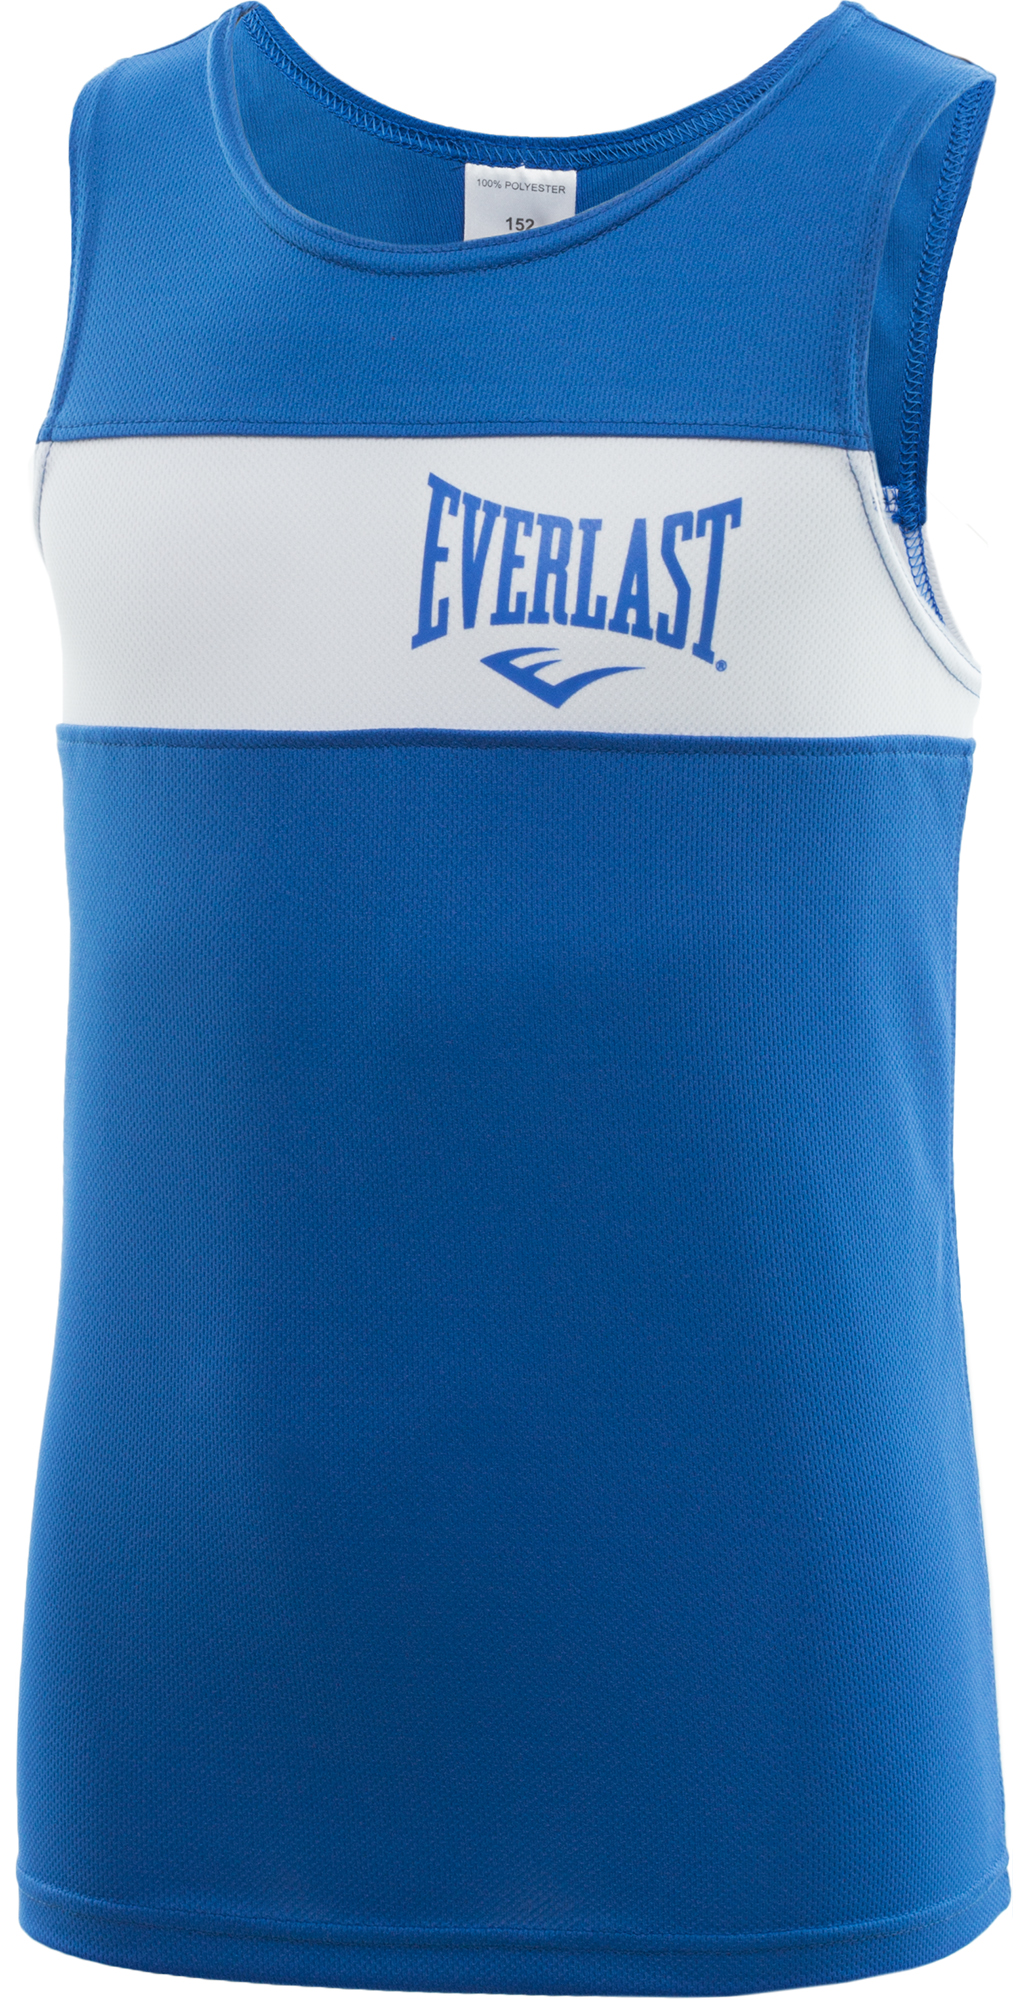 Everlast Майка для бокса детская Everlast Elite, размер 158